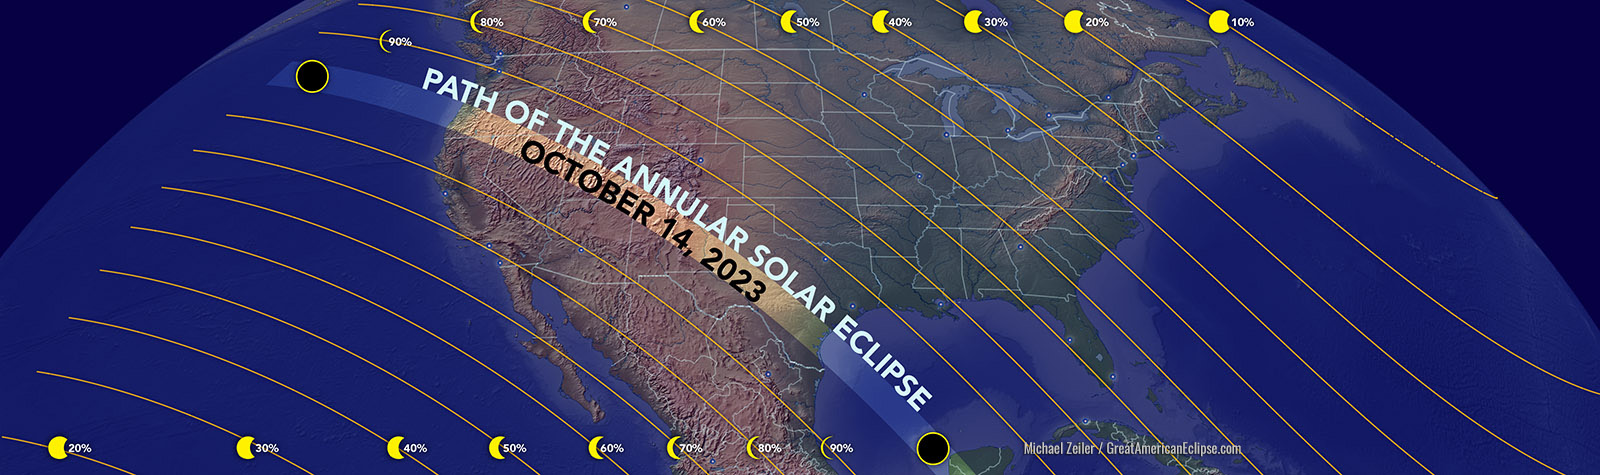 Path of October 2023 Annular Solar Eclipse